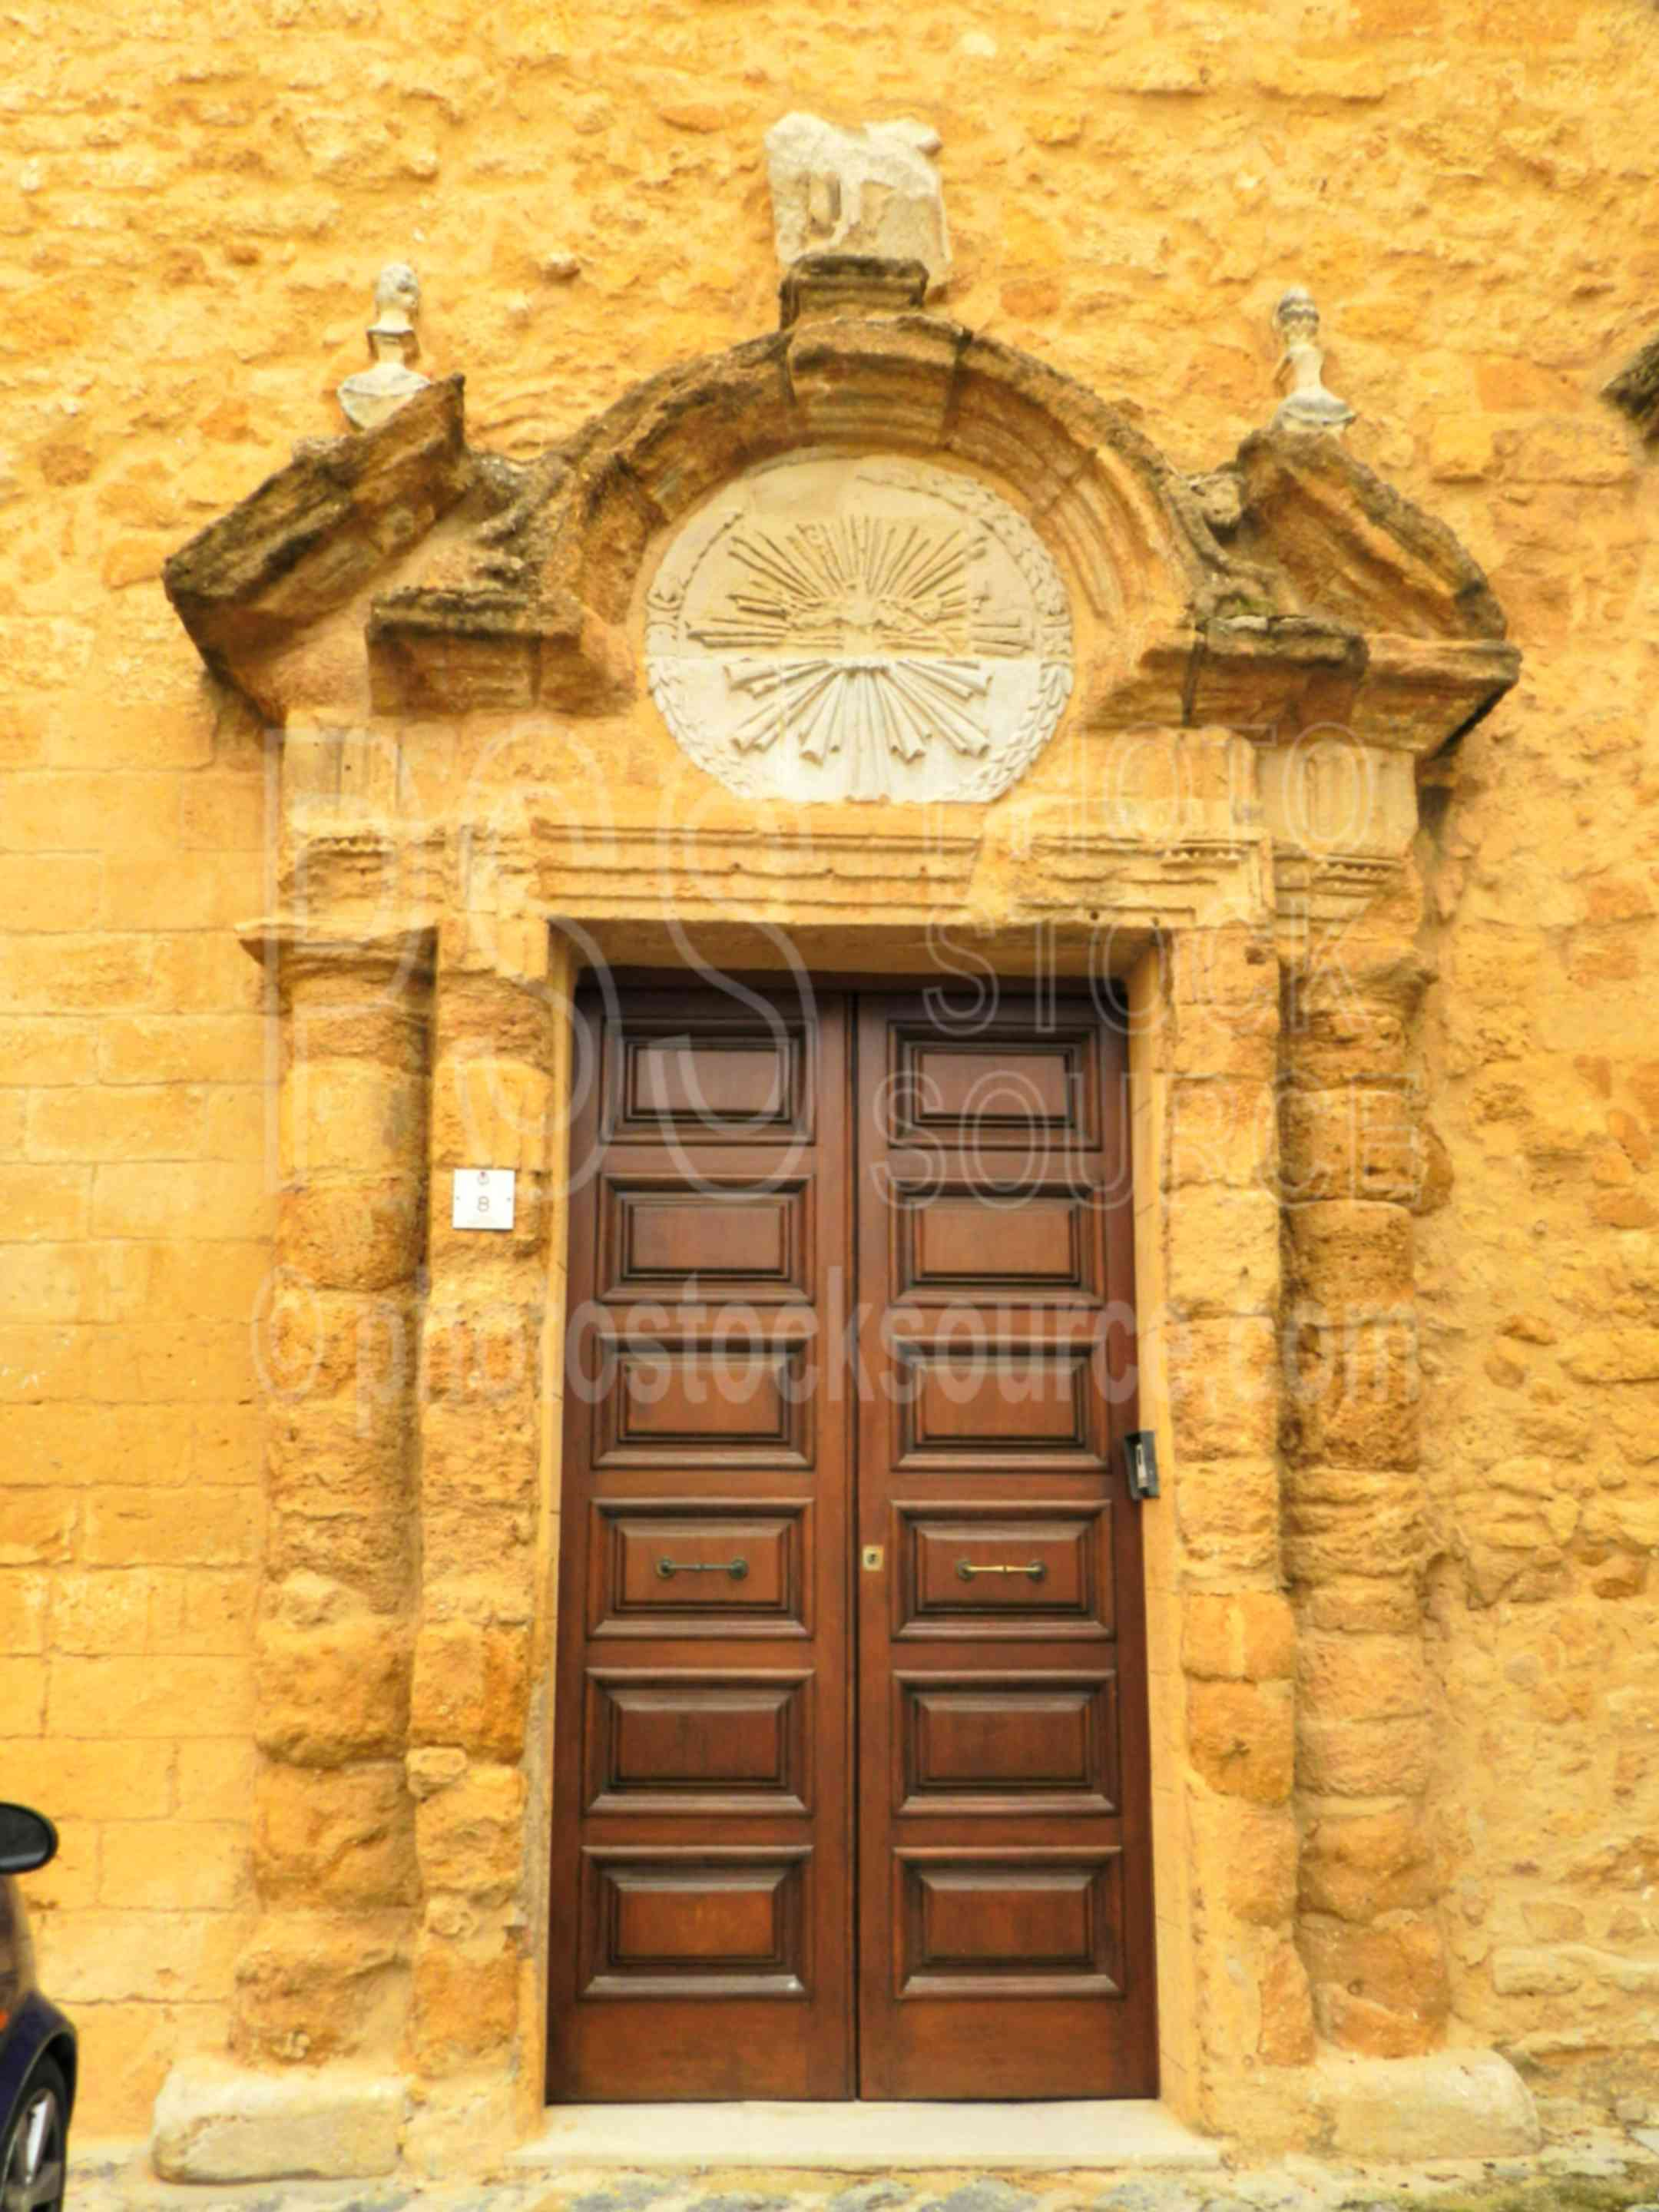 Monastery of Holy Spirit Door,agrigento,church,monastery